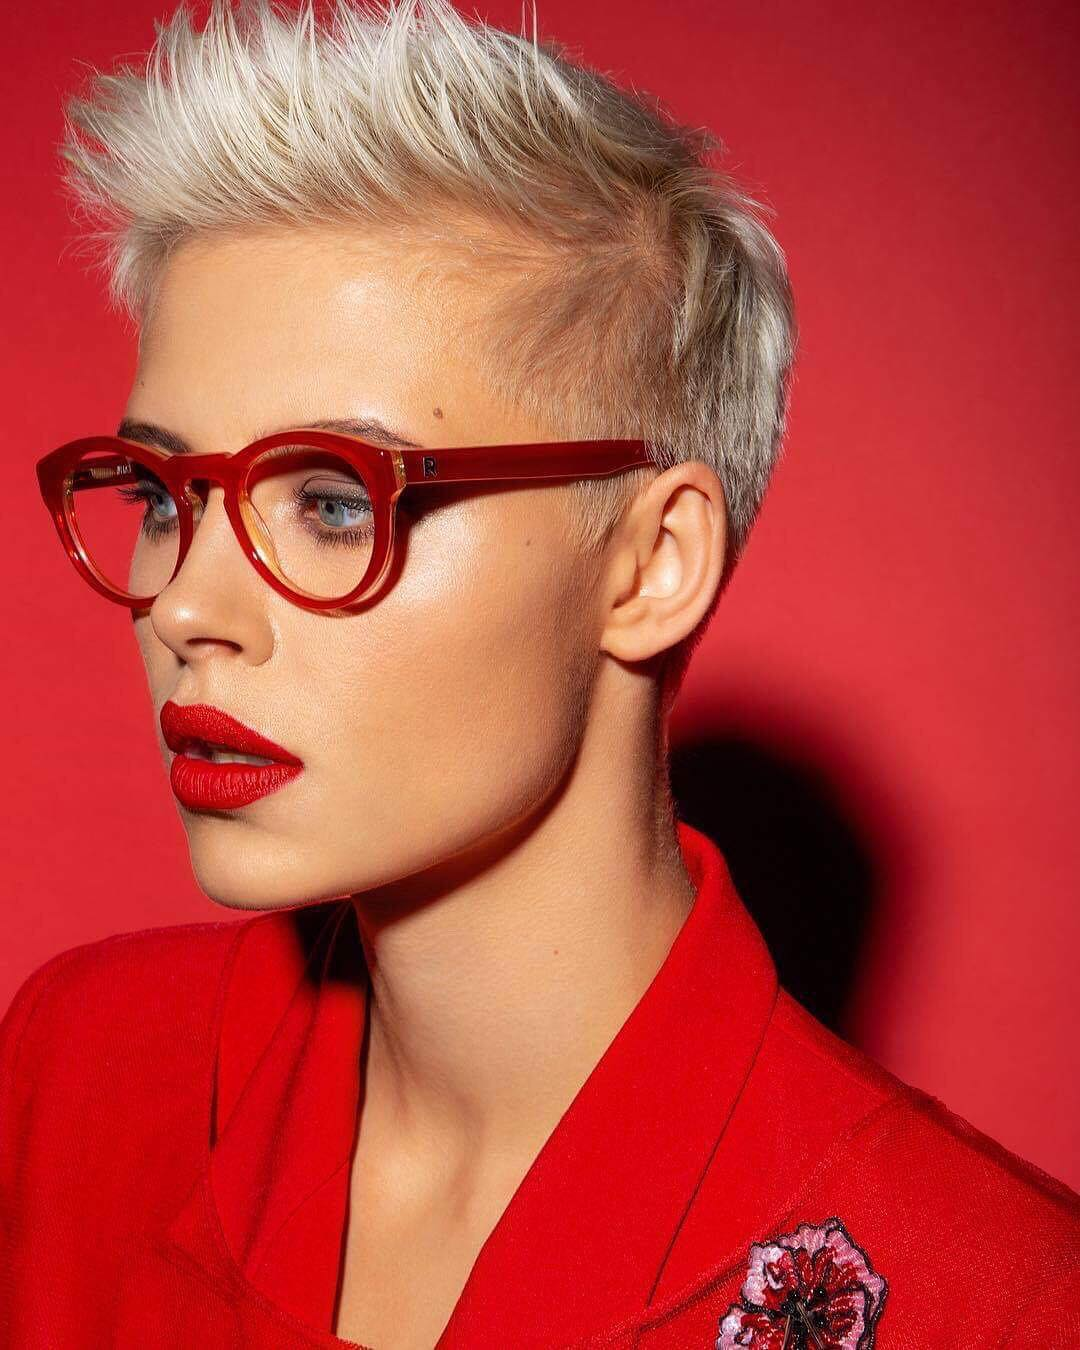 1632833073 104 The modern 10 hairstyles for beautiful women wearing glasses - The modern 10 hairstyles for beautiful women wearing glasses